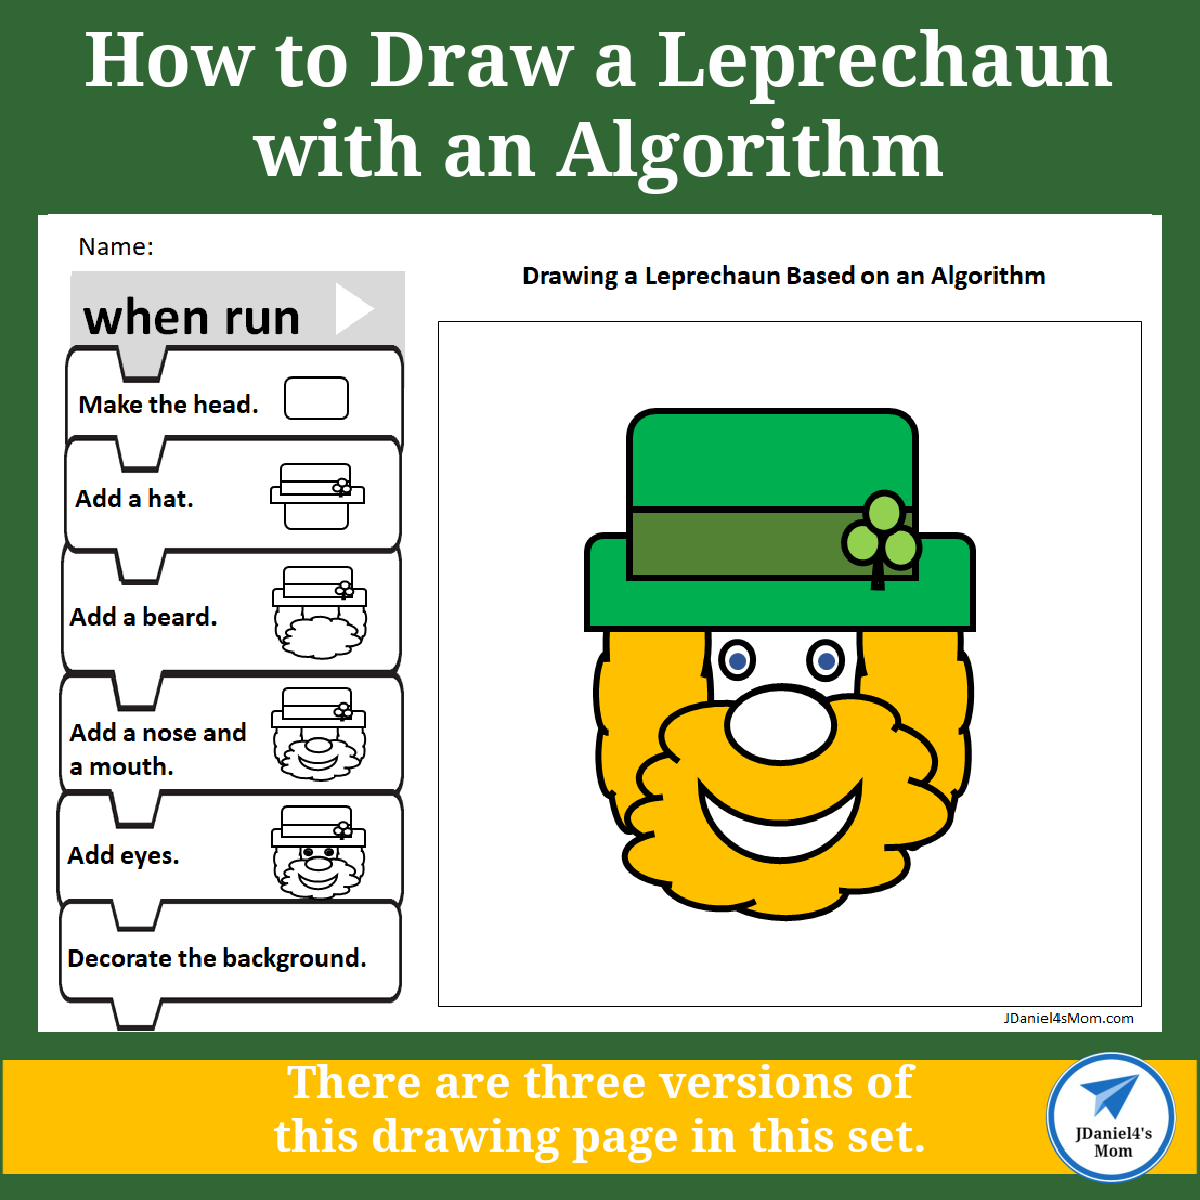 How to Draw a Leprechaun with an Algorithm Set